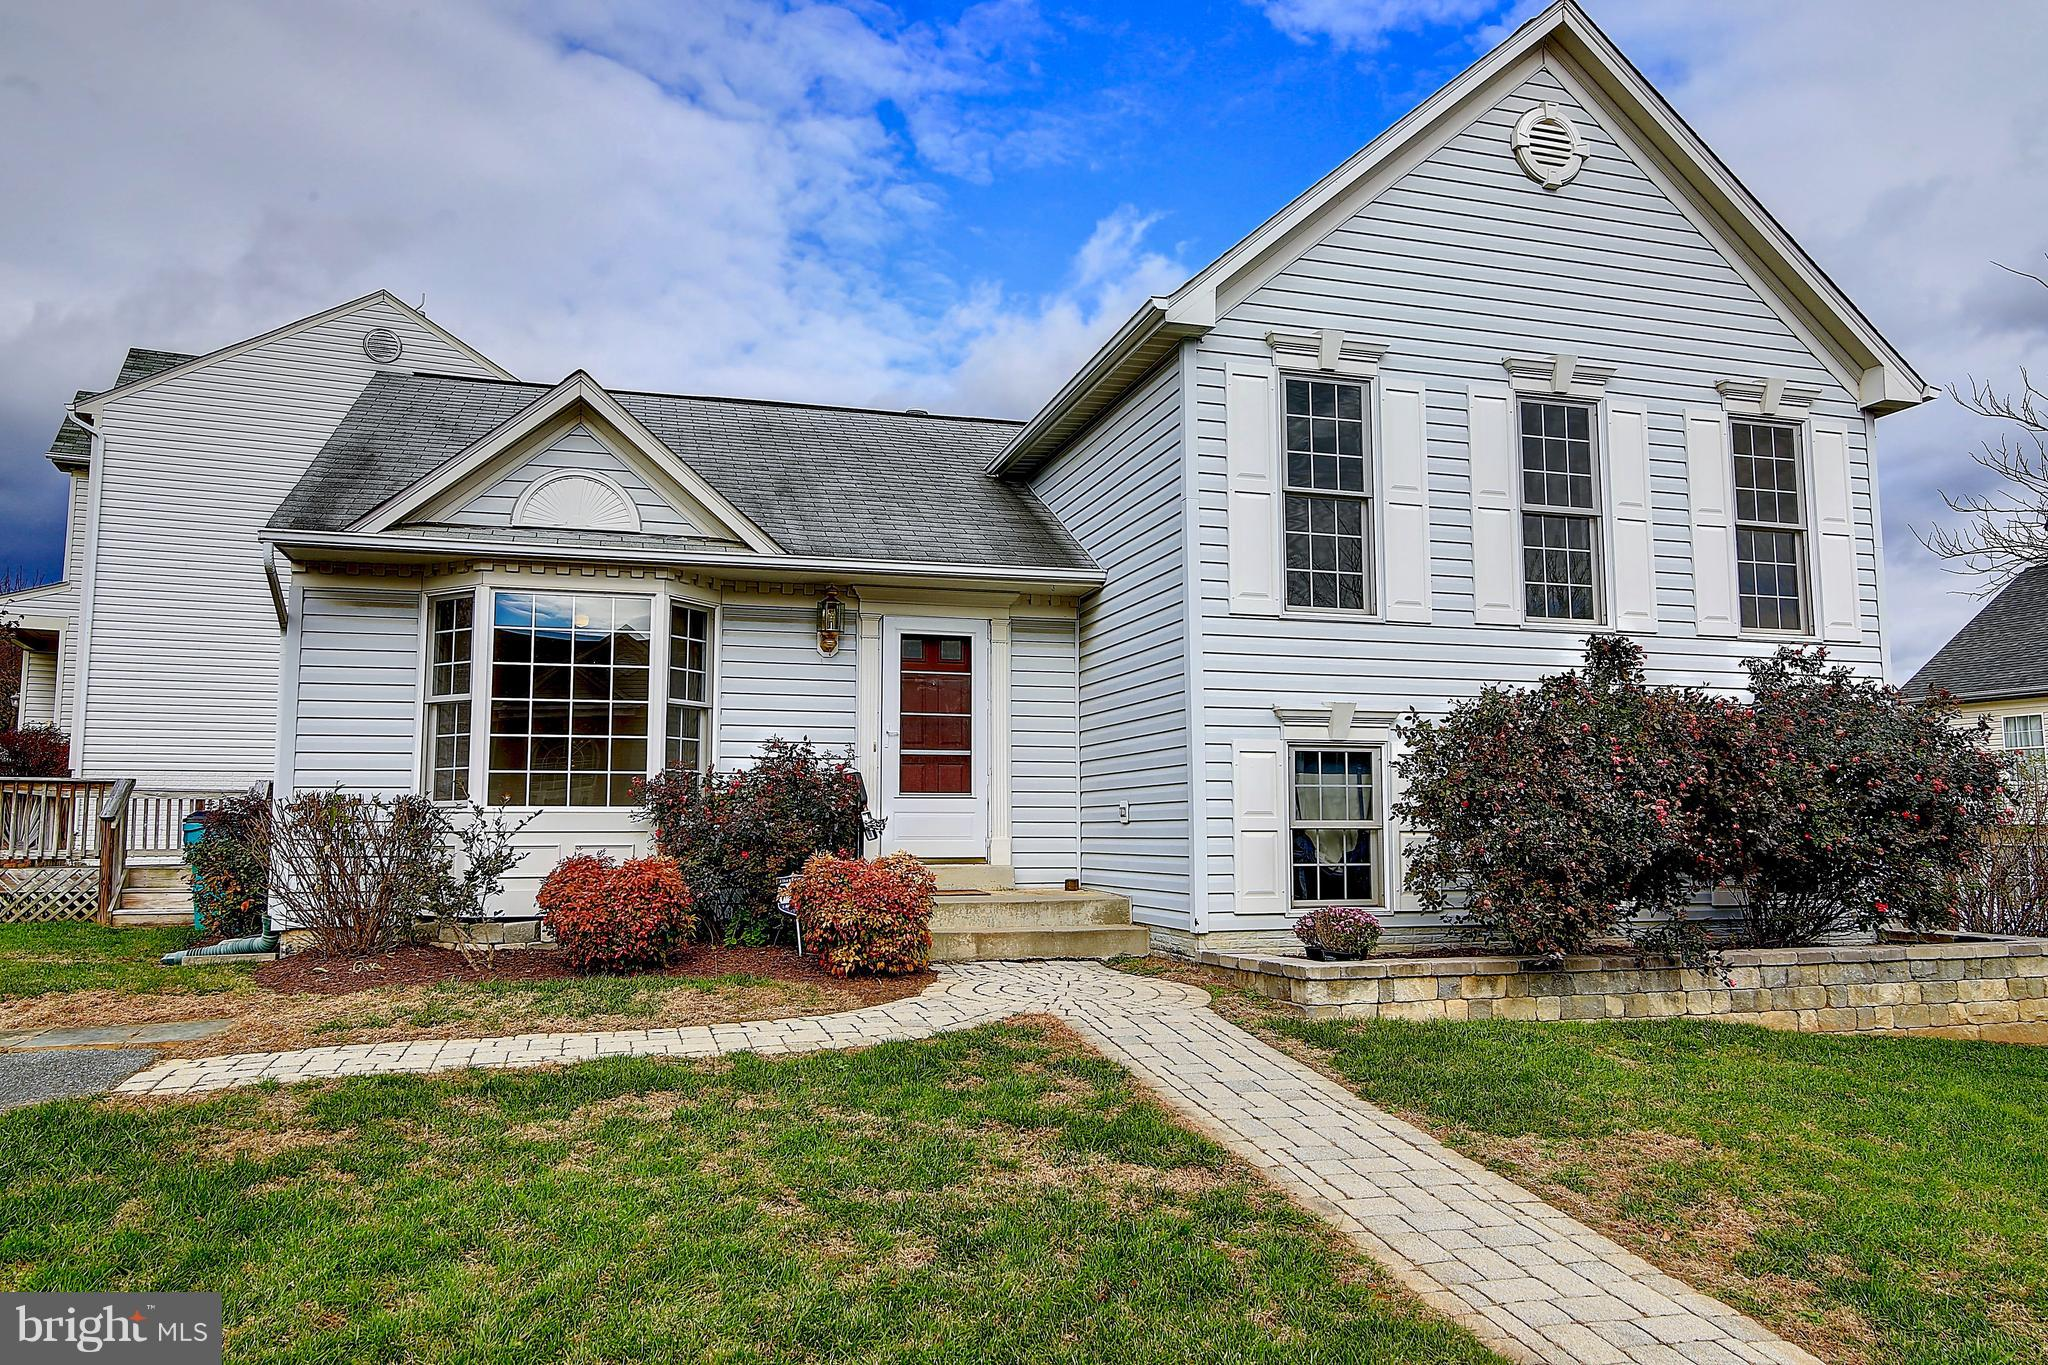 1741 CONRADS FERRY DRIVE, POINT OF ROCKS, MD 21777